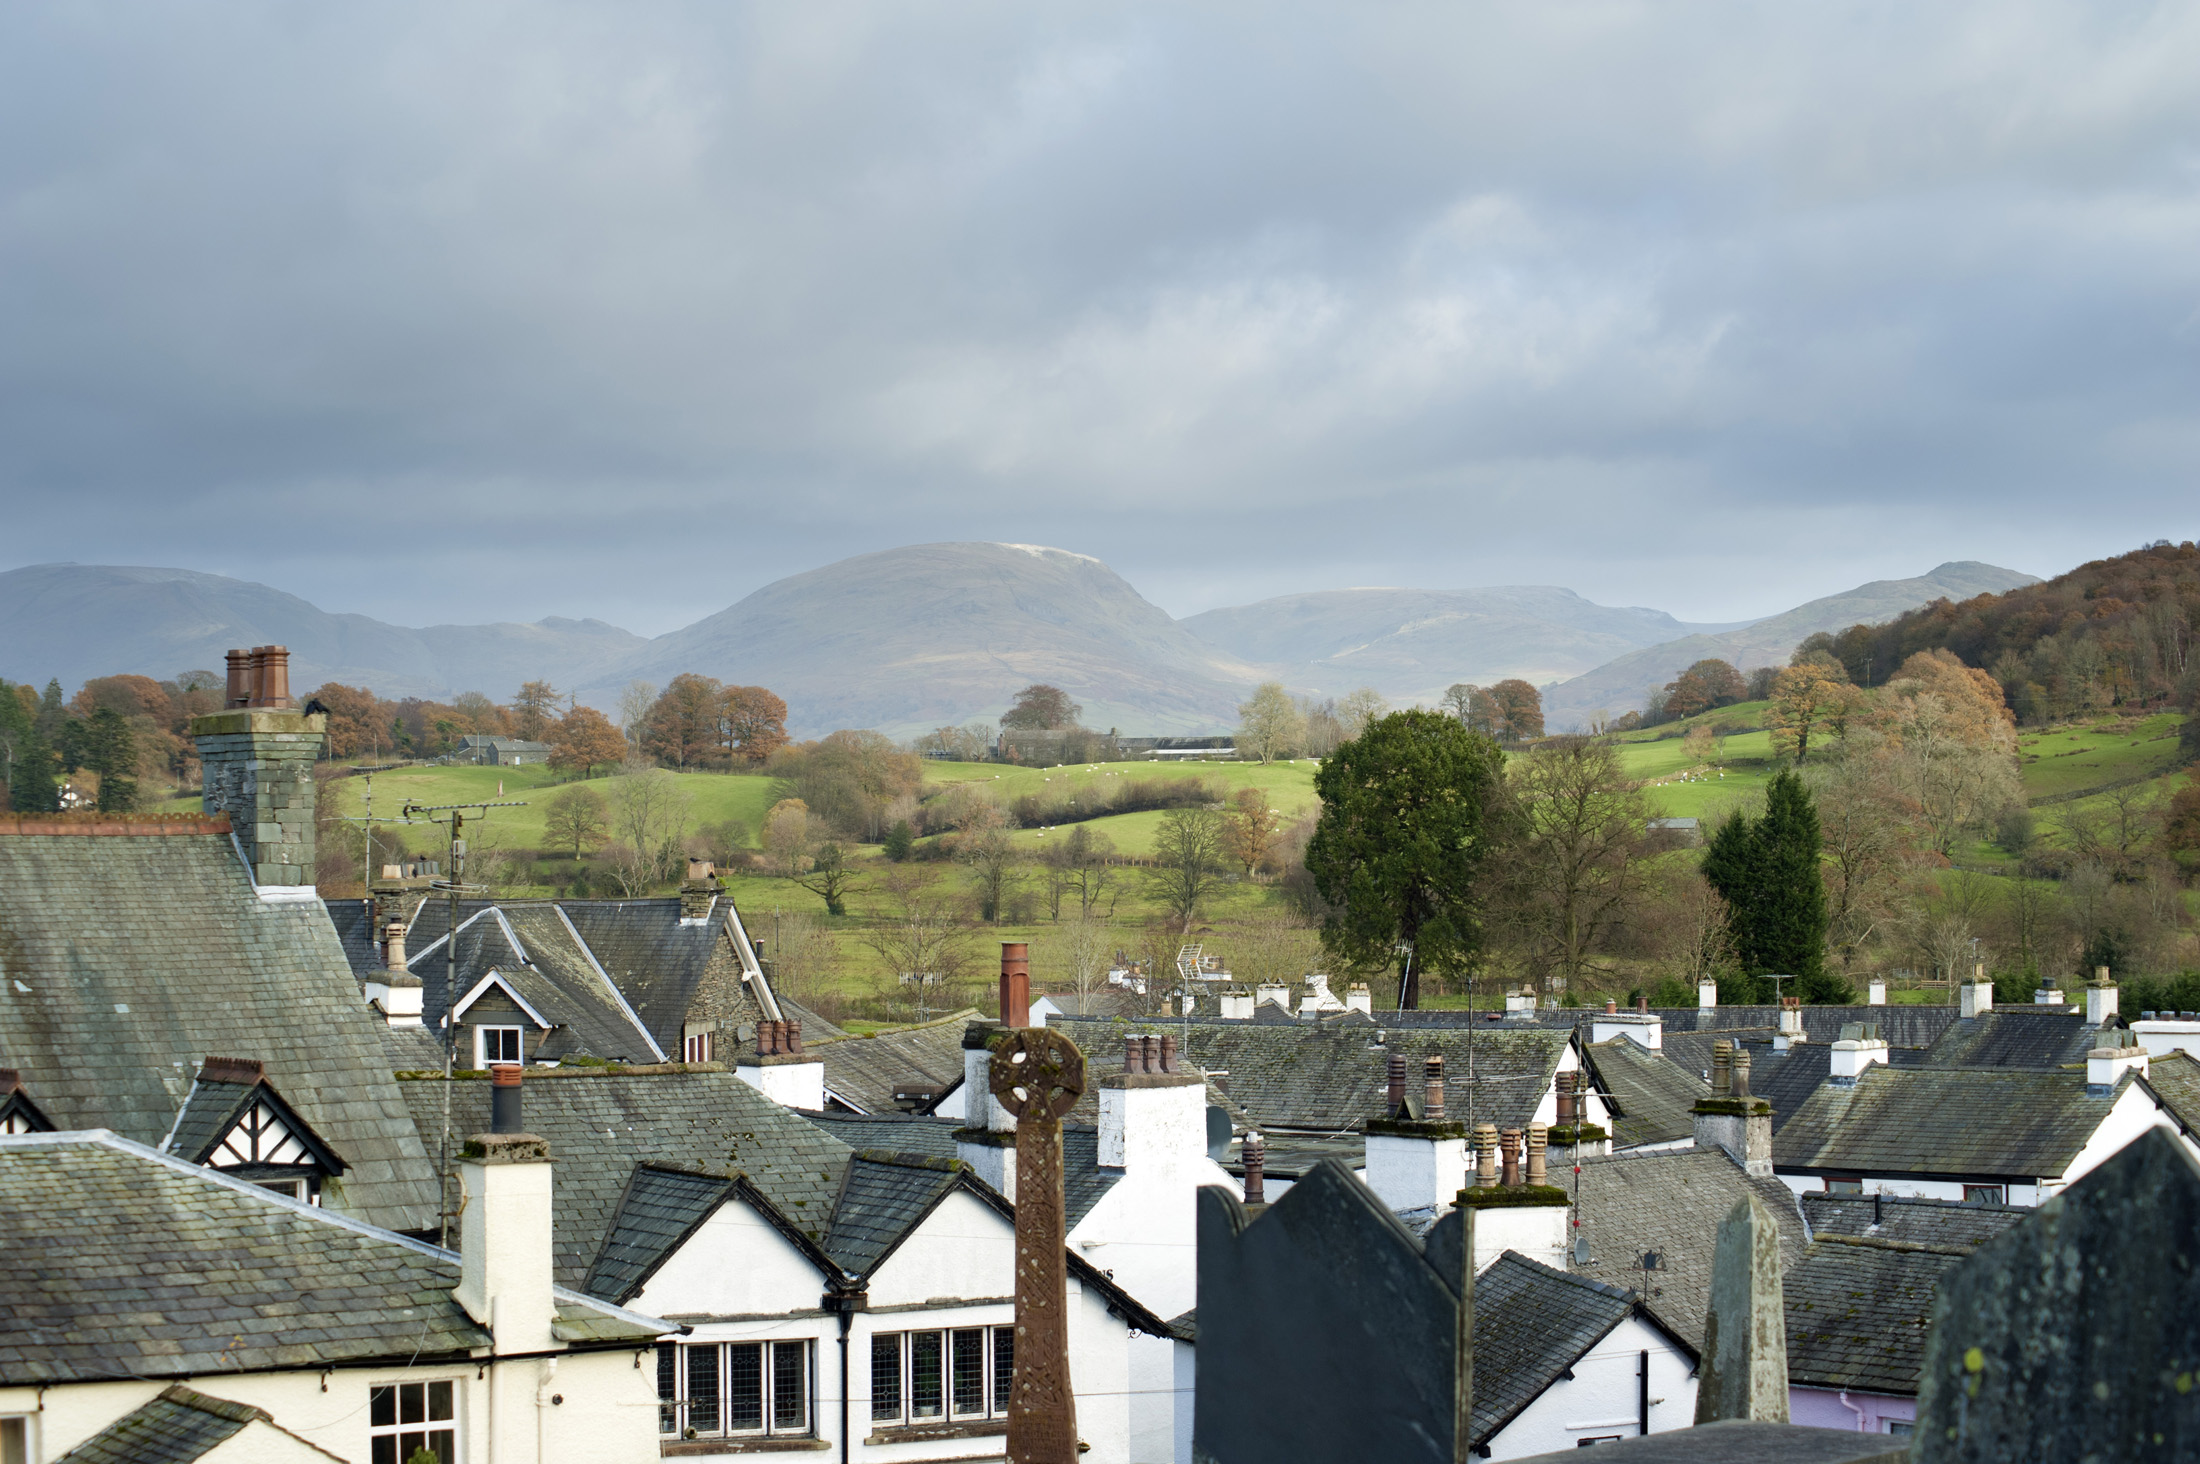 Panoramic view of Hawkshead in Cumbria with its picturesque whitewashed cottages surrounded by lush countryside with mountins and rolling hills, a popular tourist destination in the Lake District